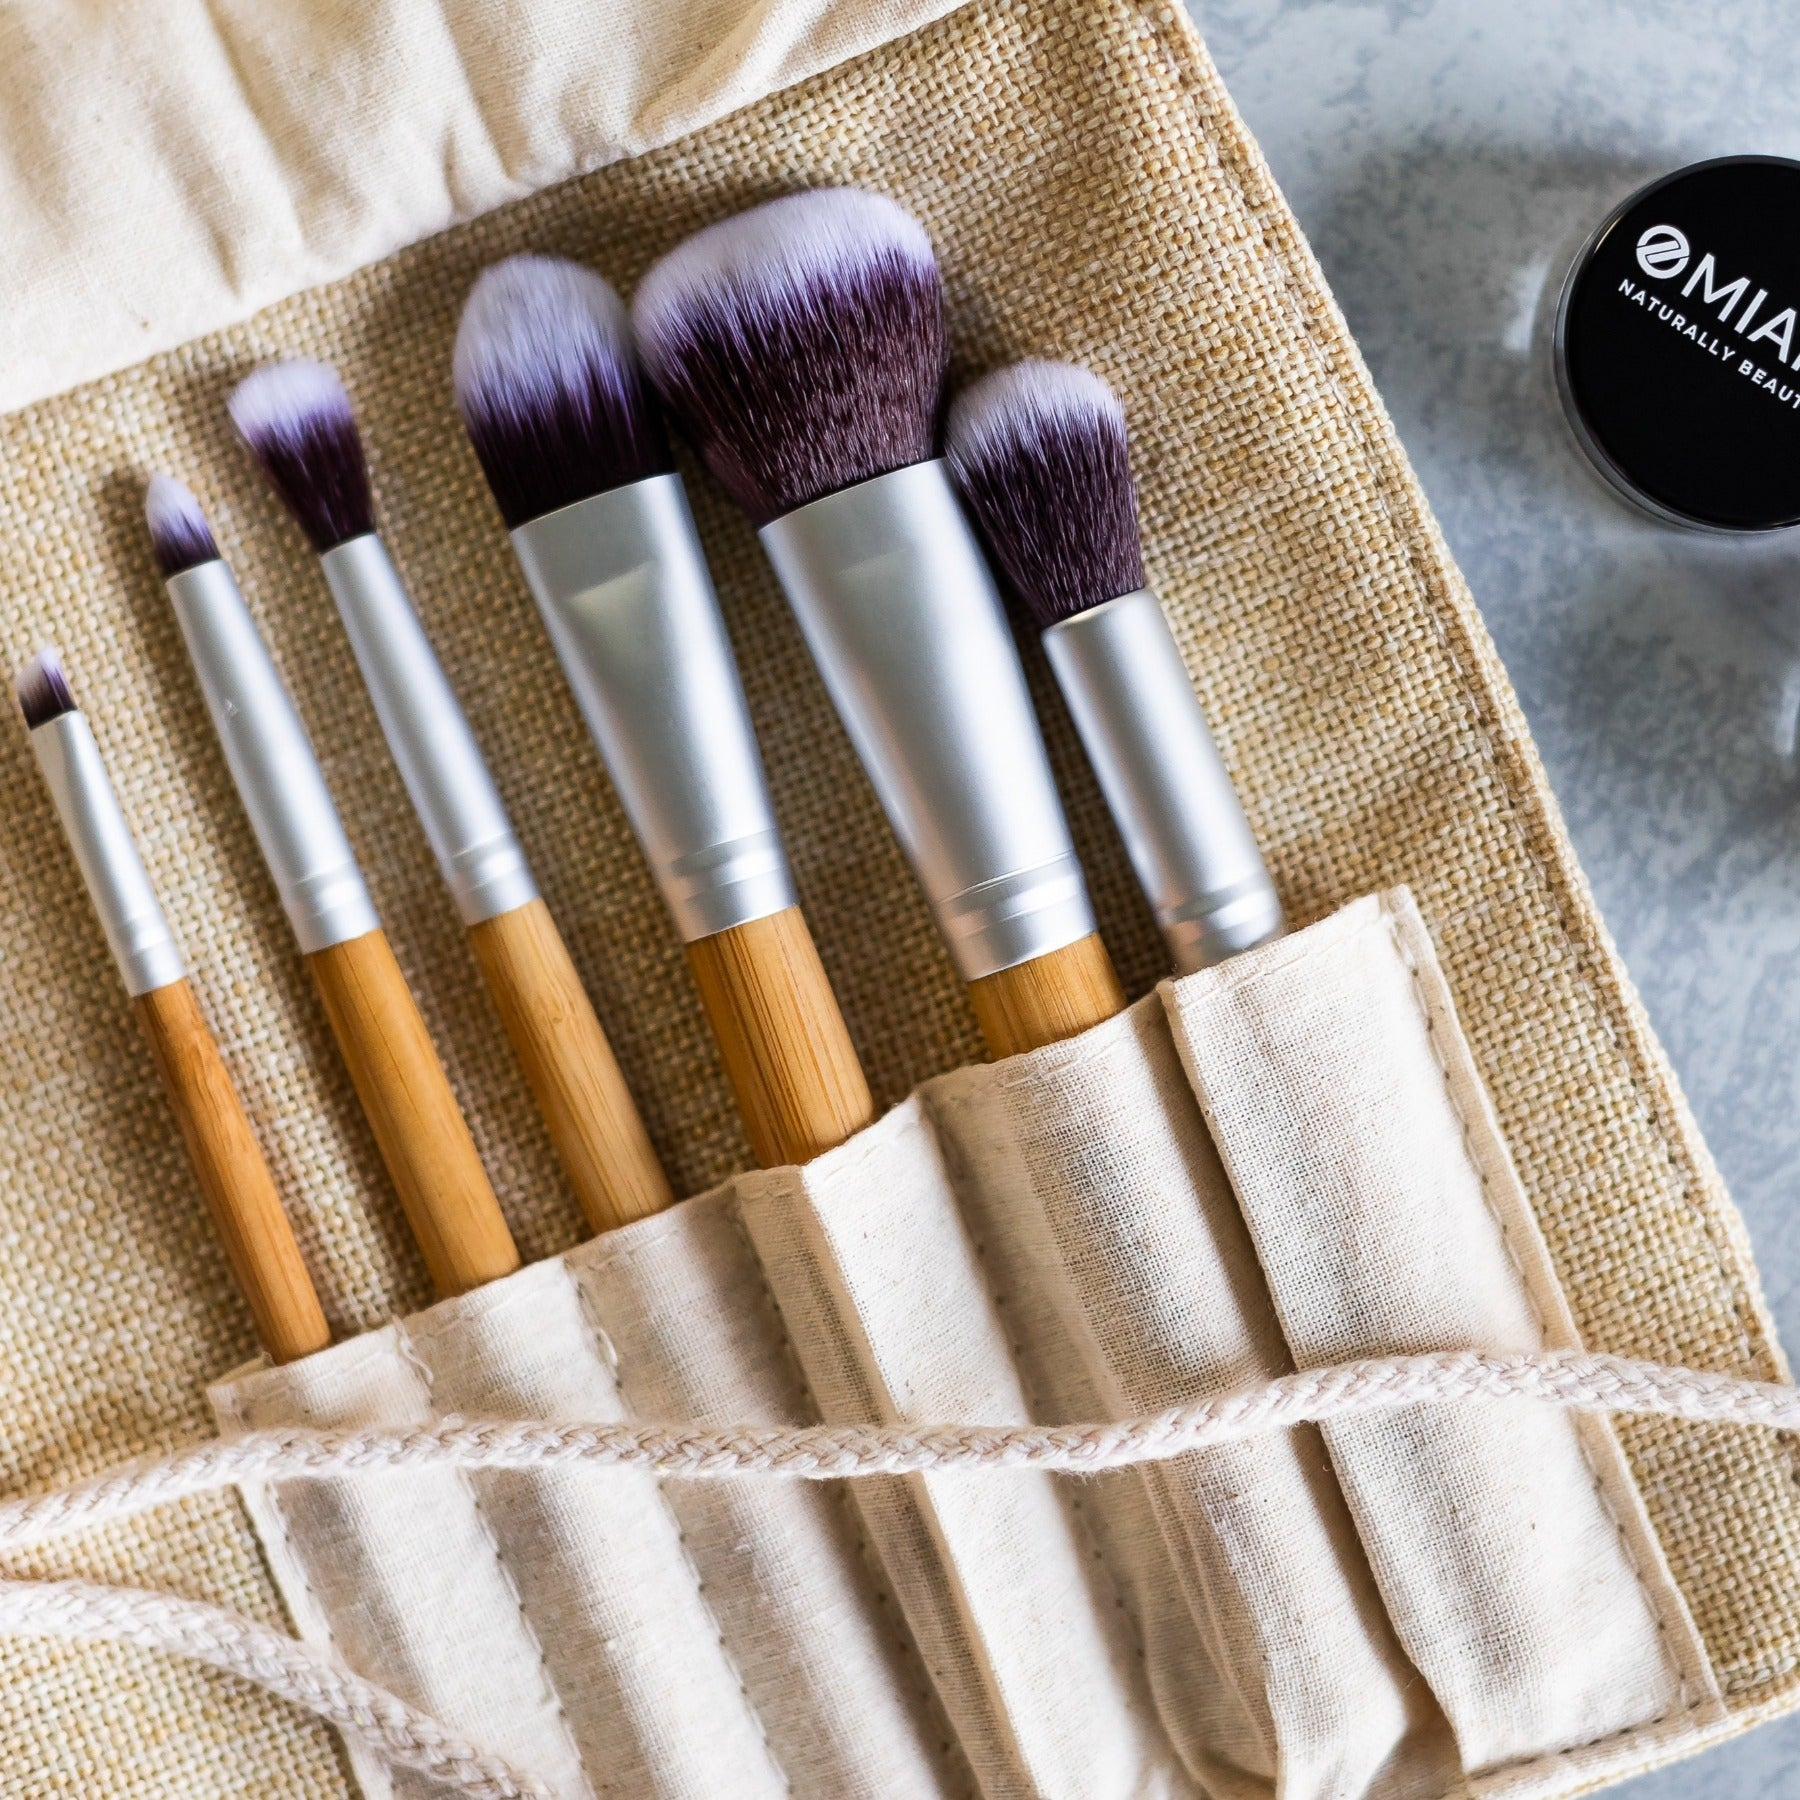 Vegan Brushes for Mineral Makeup